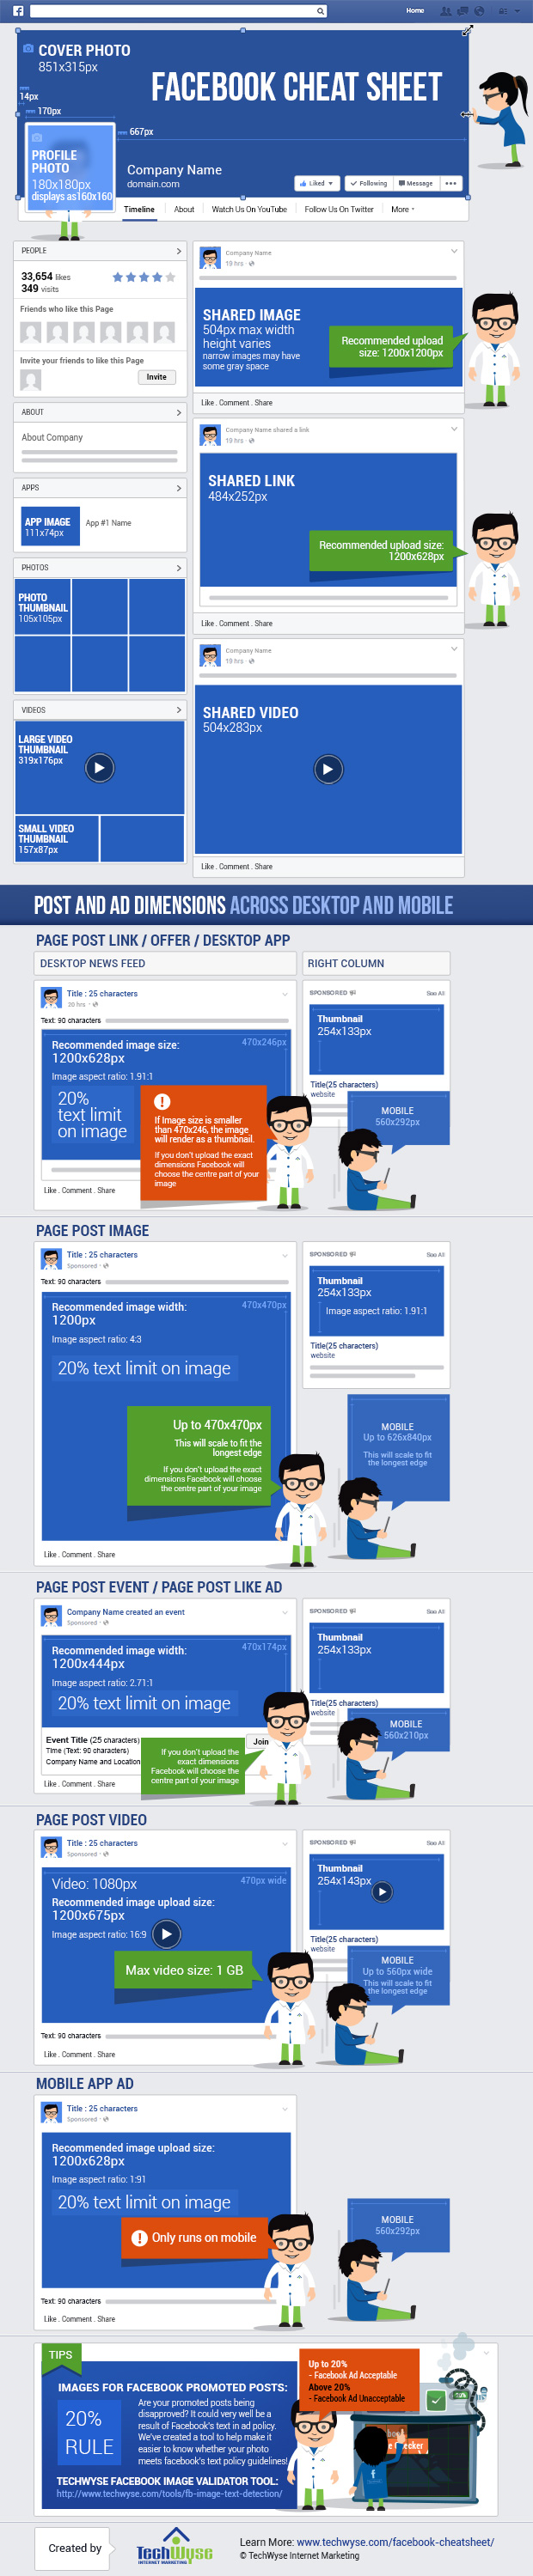 INFOGRAPHIC: Cheat Sheet for Facebook Page Admins – AllFacebook